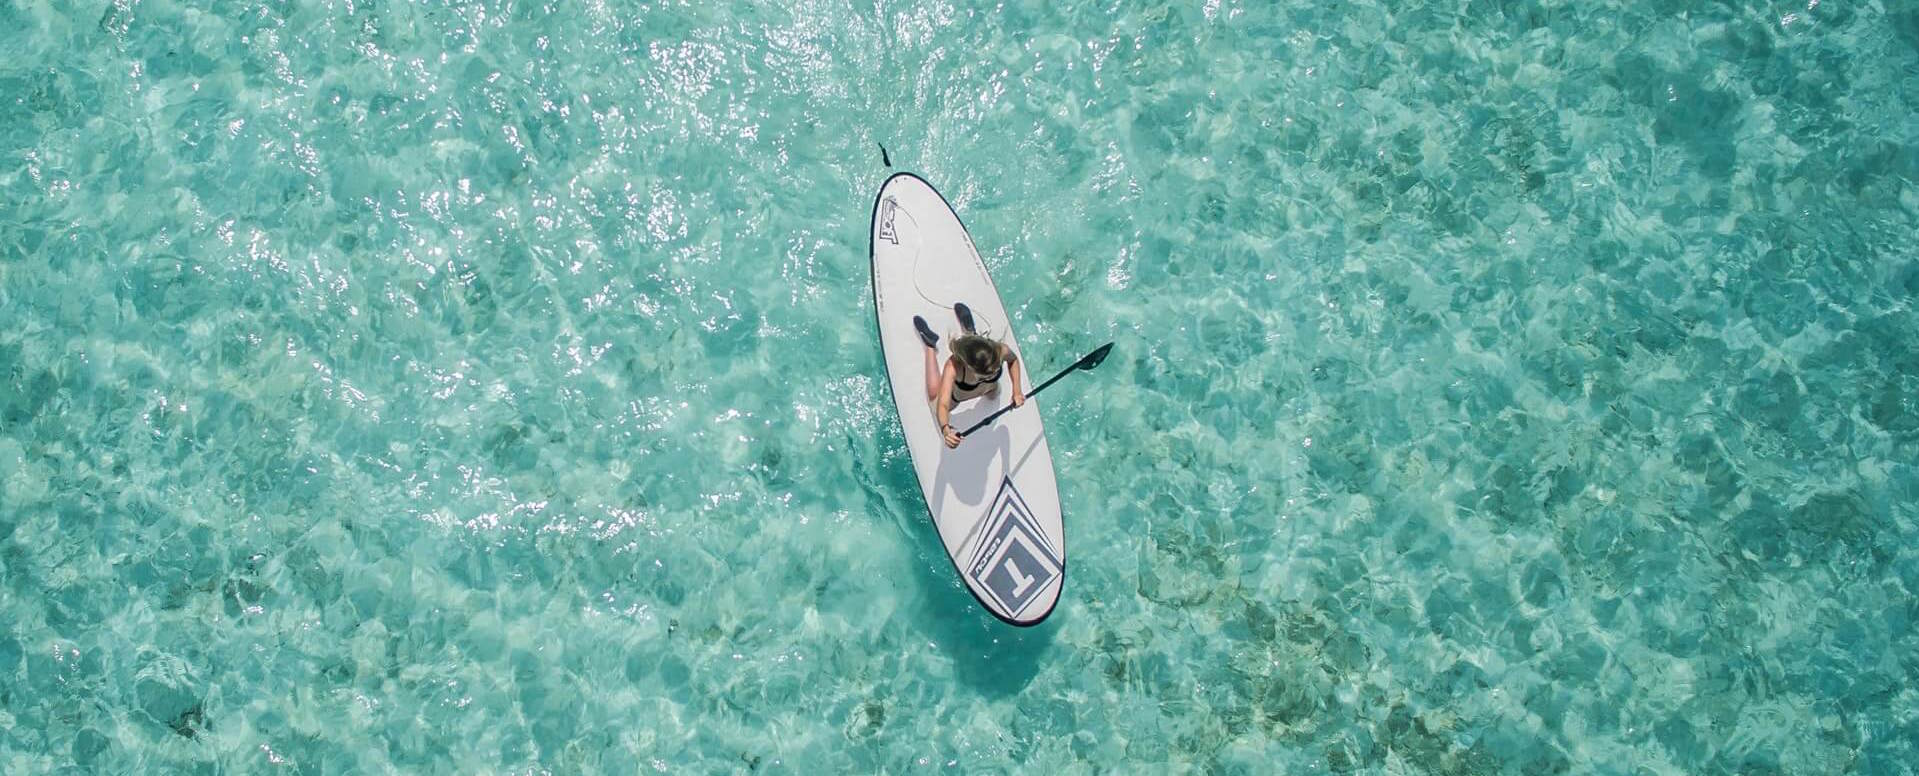 Stroll on the water in Stand Up Paddle - Algarve